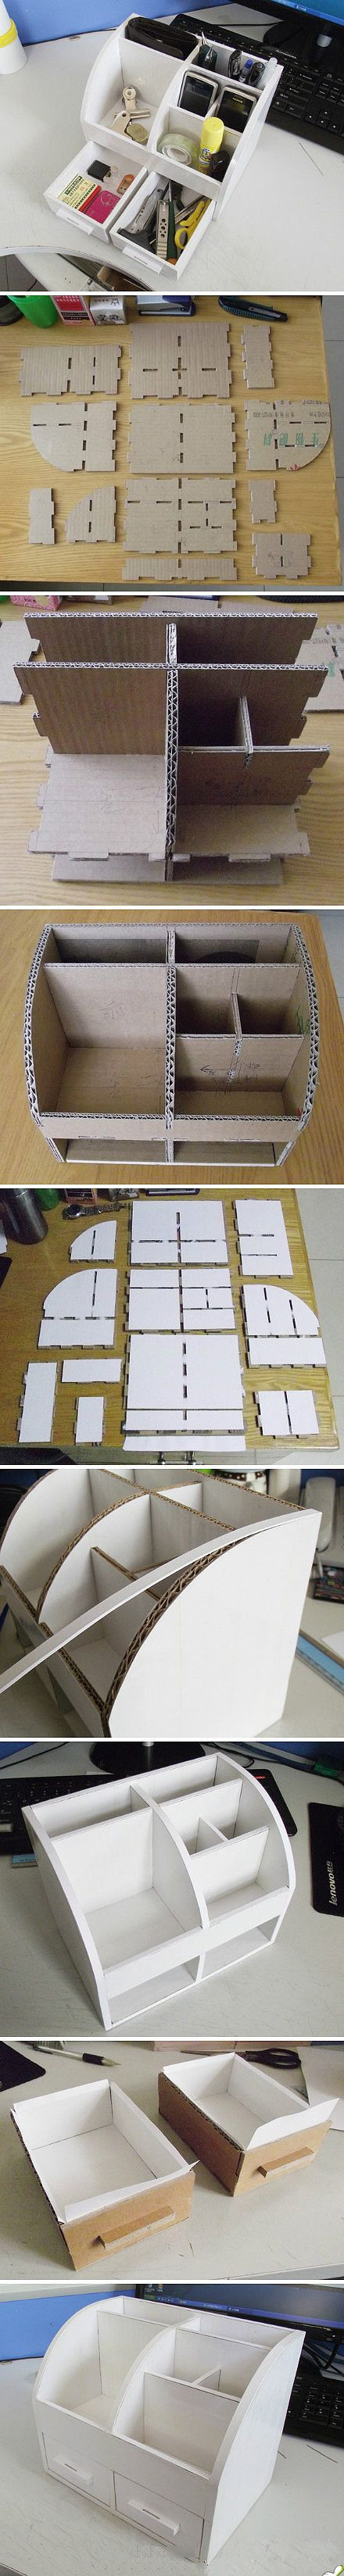 DIY organizational unit from cardboard.  Oh, I am SO doing this.